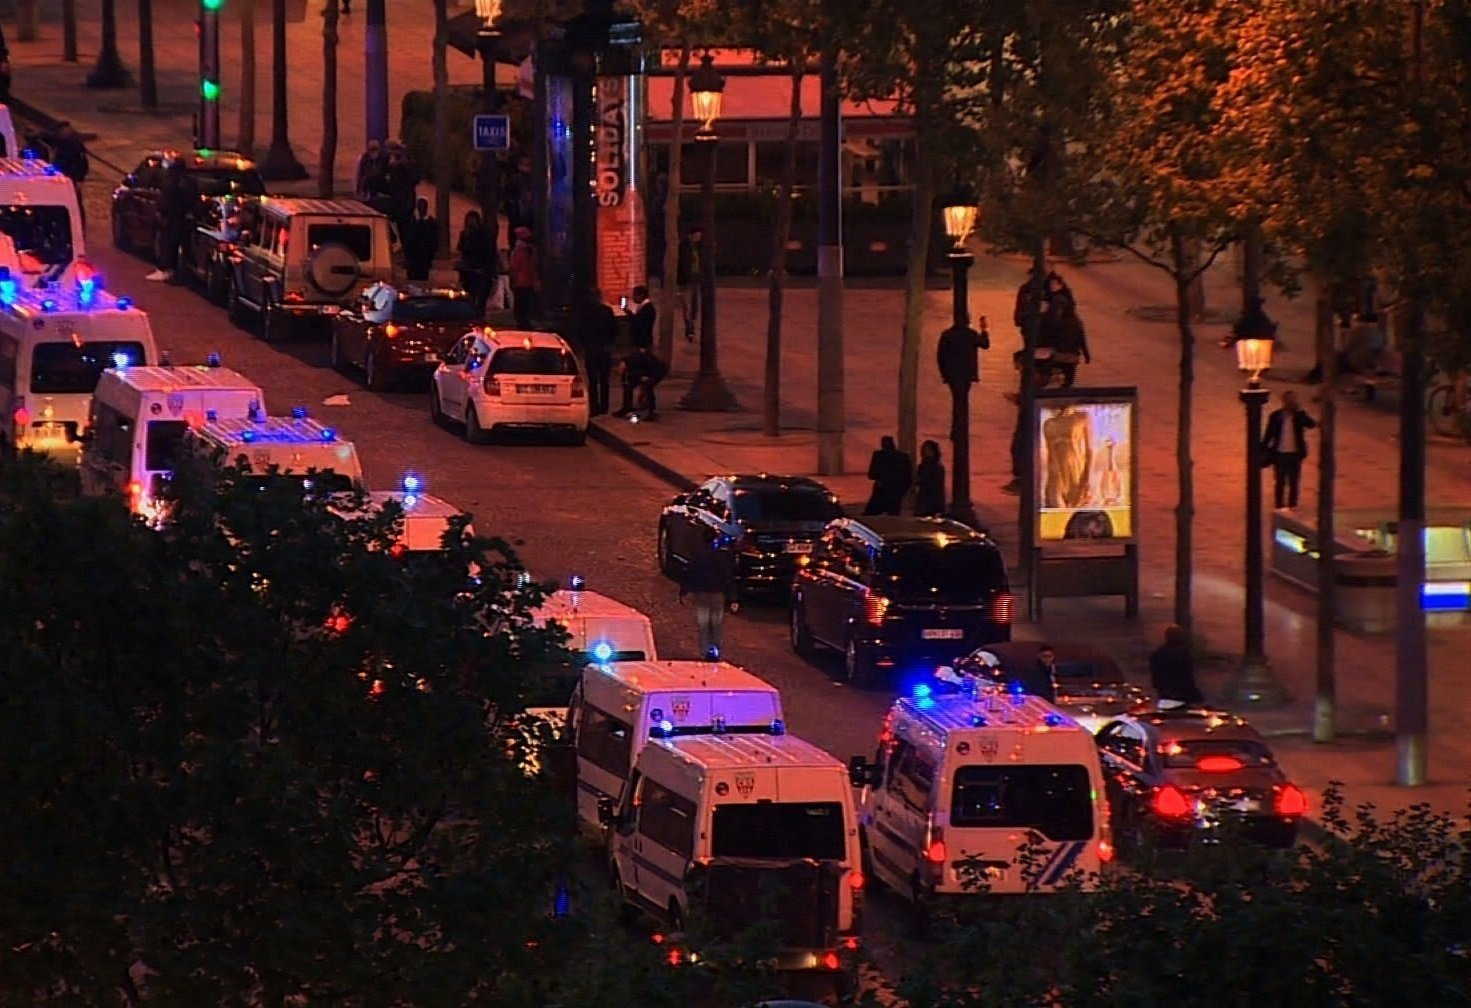 The Champs Elysees in Paris has been closed. Authorities are telling people to avoid the area. Multiple security vehicles are on the scene.